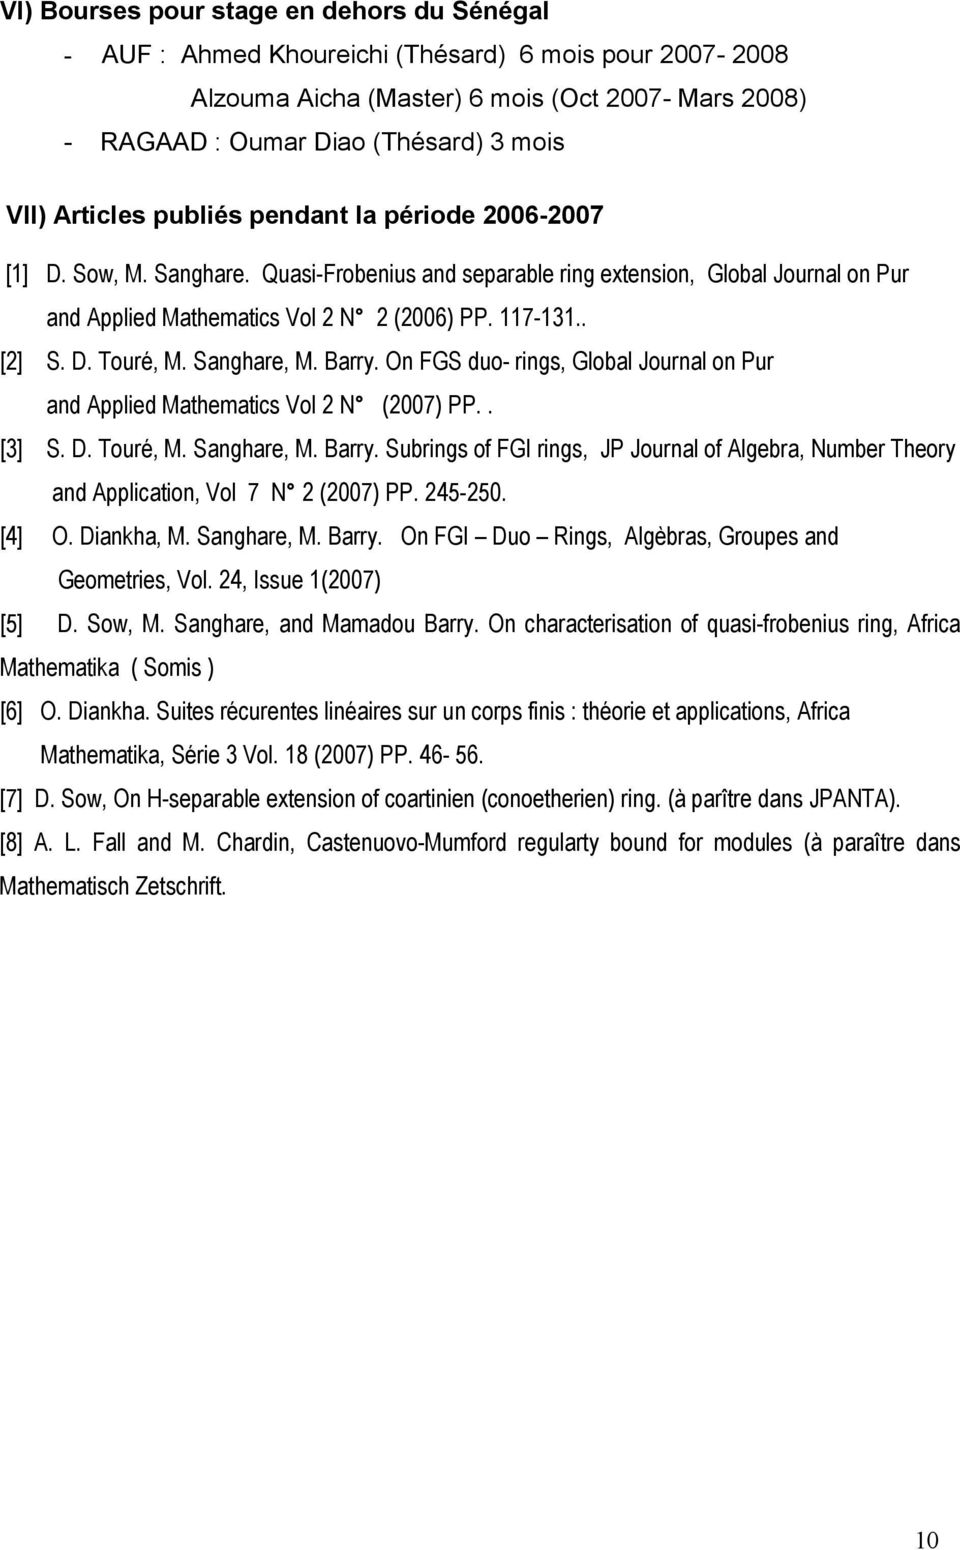 D. Touré, M. Sanghare, M. Barry. On FGS duo- rings, Global Journal on Pur and Applied Mathematics Vol 2 N (2007) PP.. [3] S. D. Touré, M. Sanghare, M. Barry. Subrings of FGI rings, JP Journal of Algebra, Number Theory and Application, Vol 7 N 2 (2007) PP.